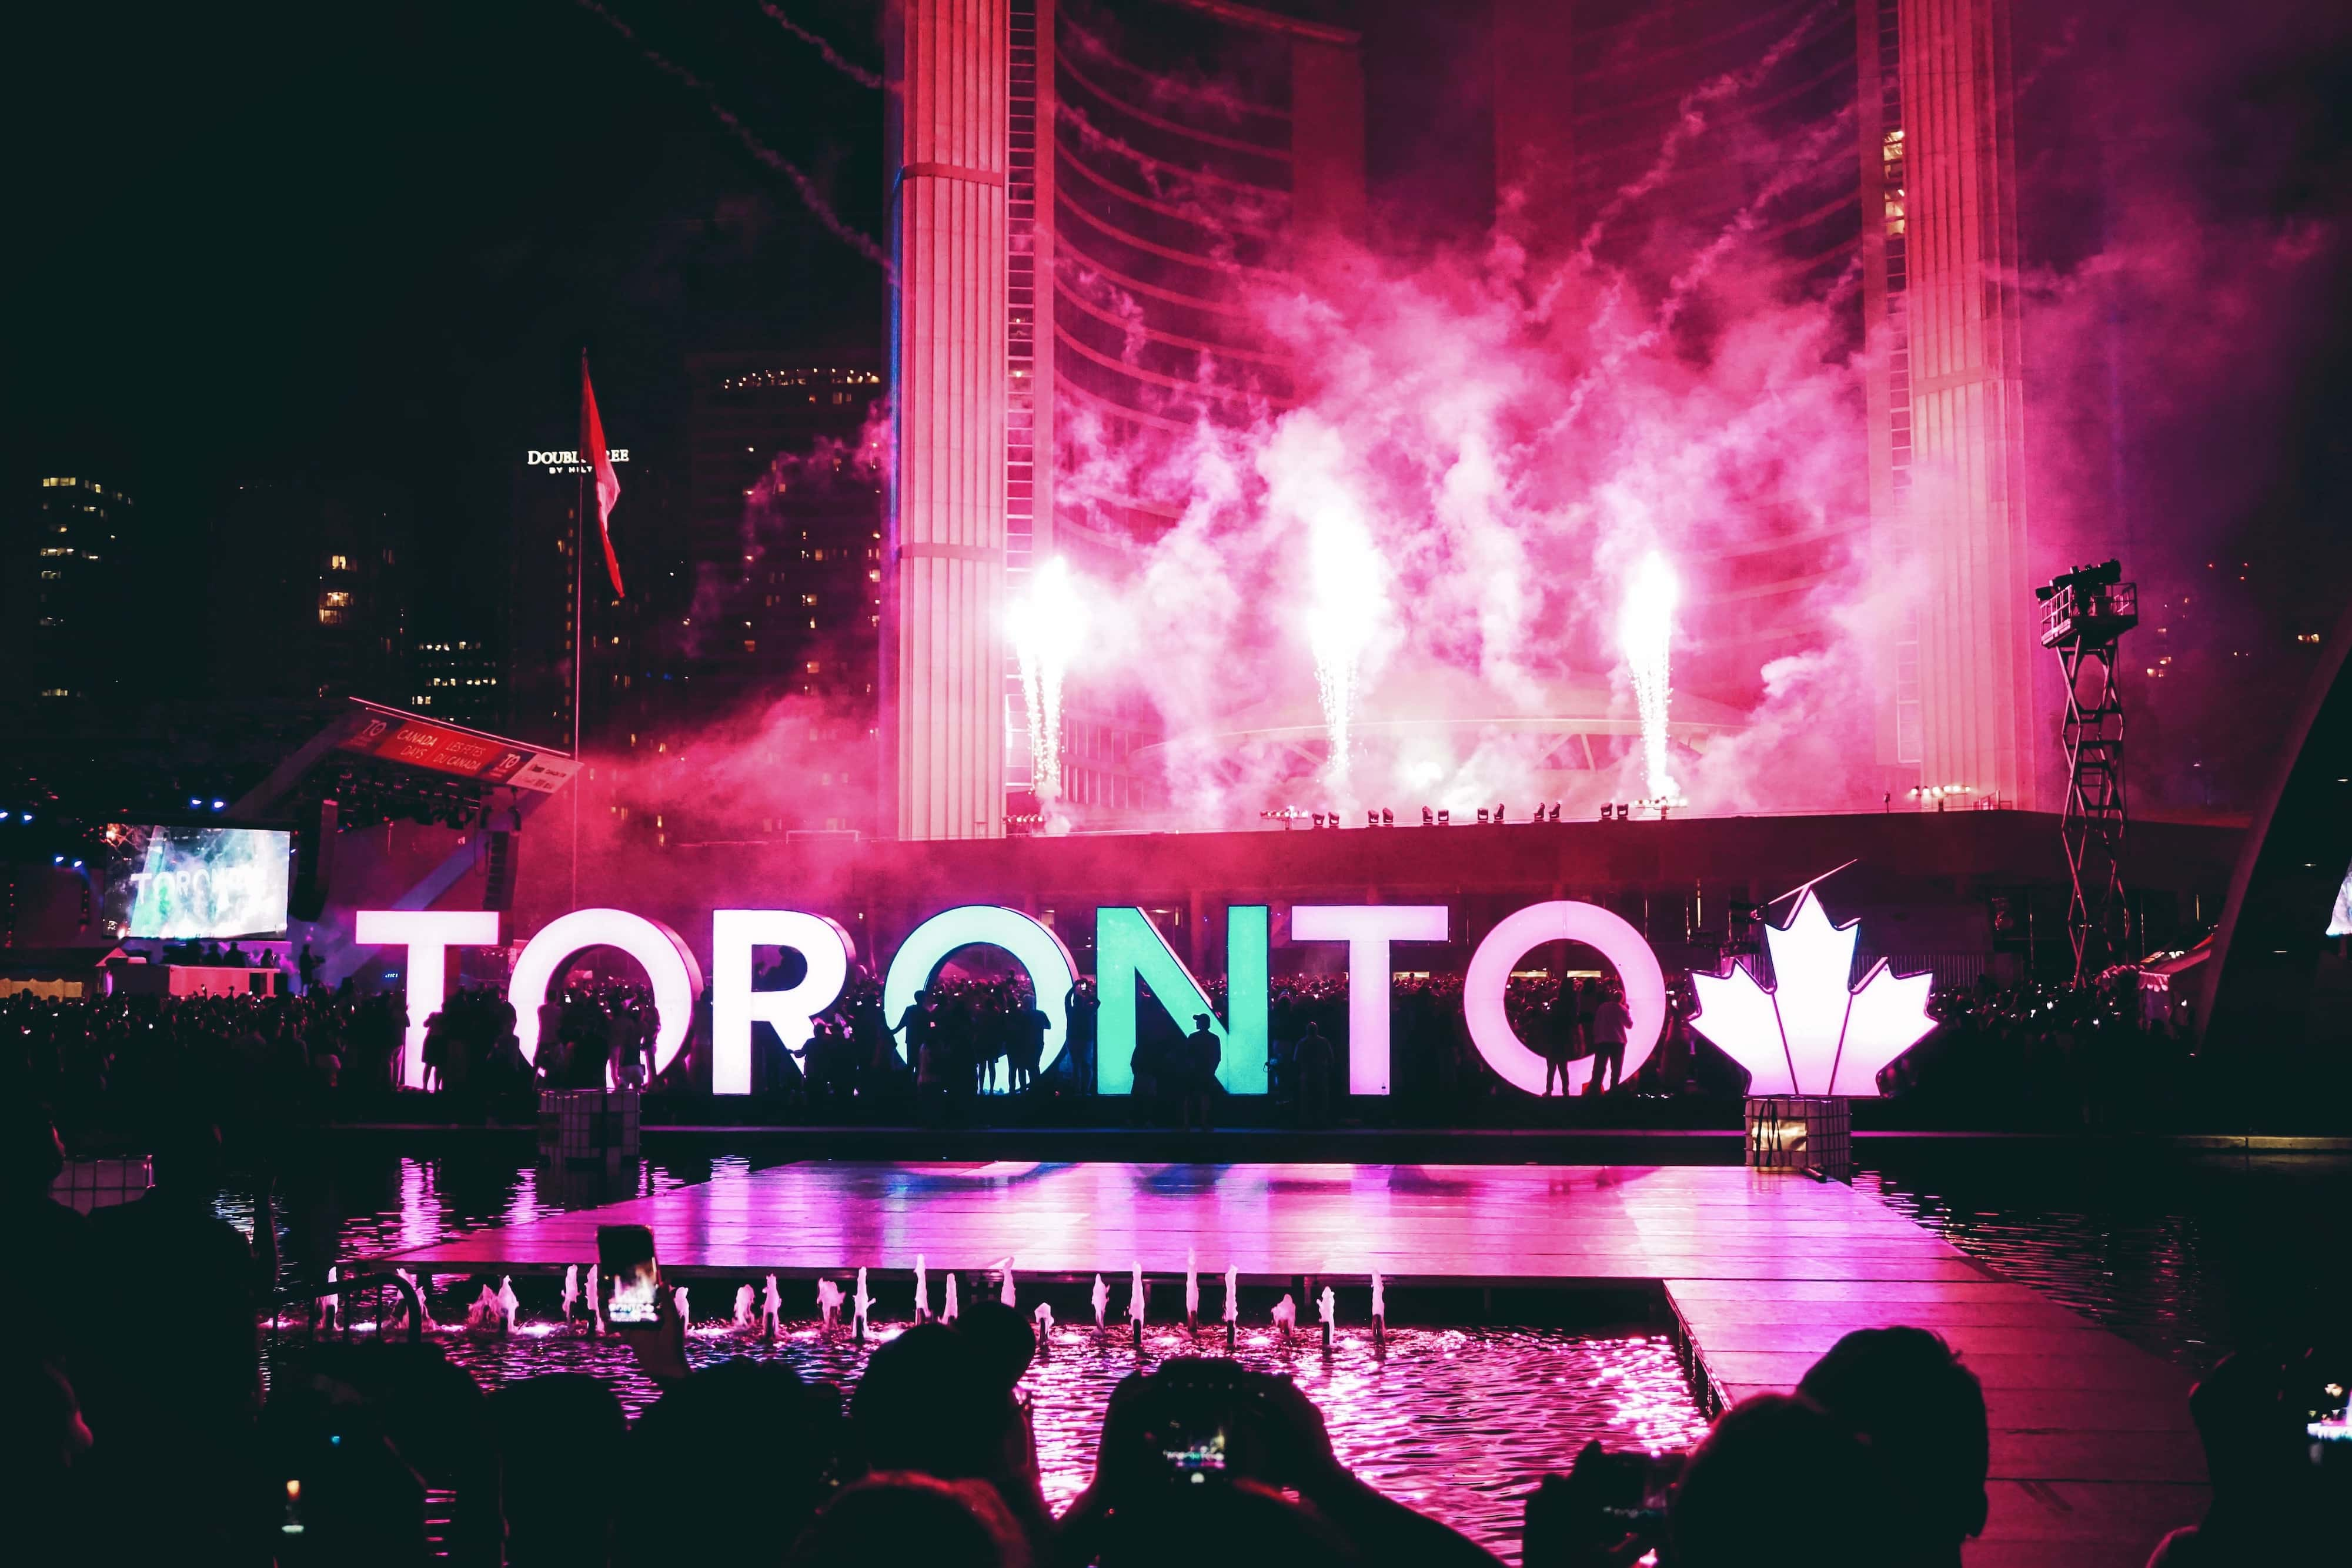 Toronto Everything – Links to all essential services & information